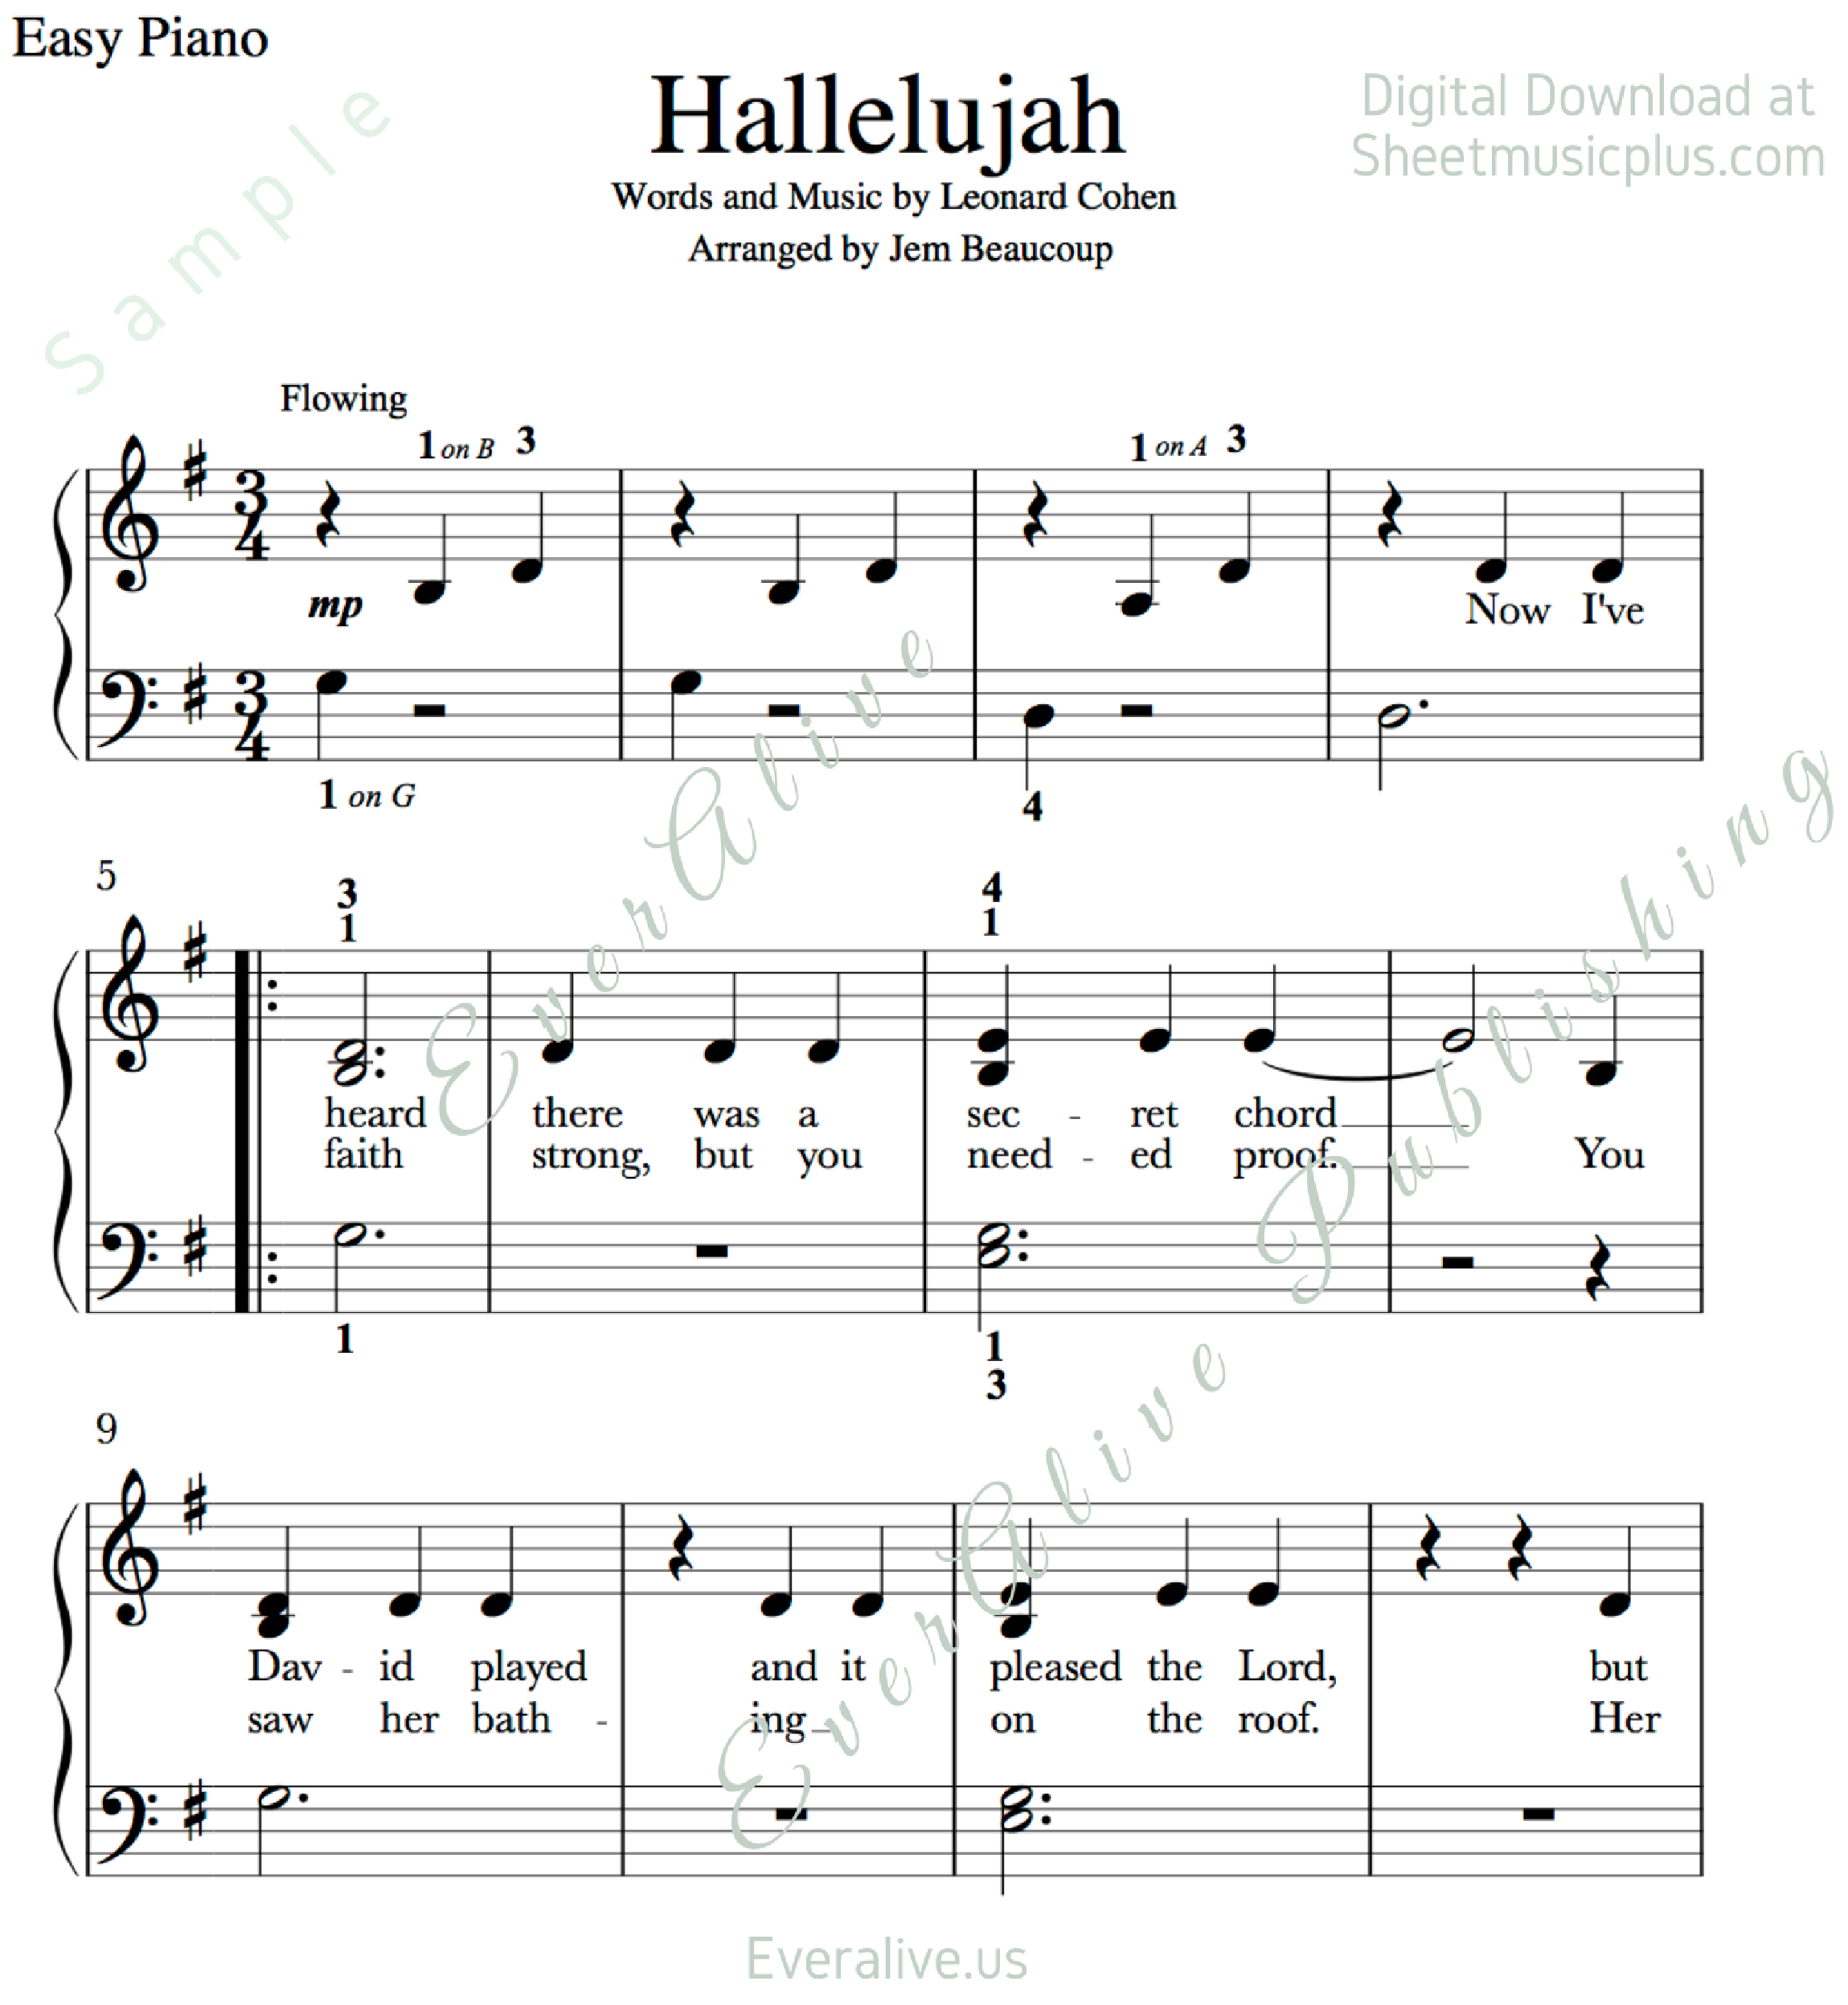 Hallelujah Easy Piano Letters Infoletter